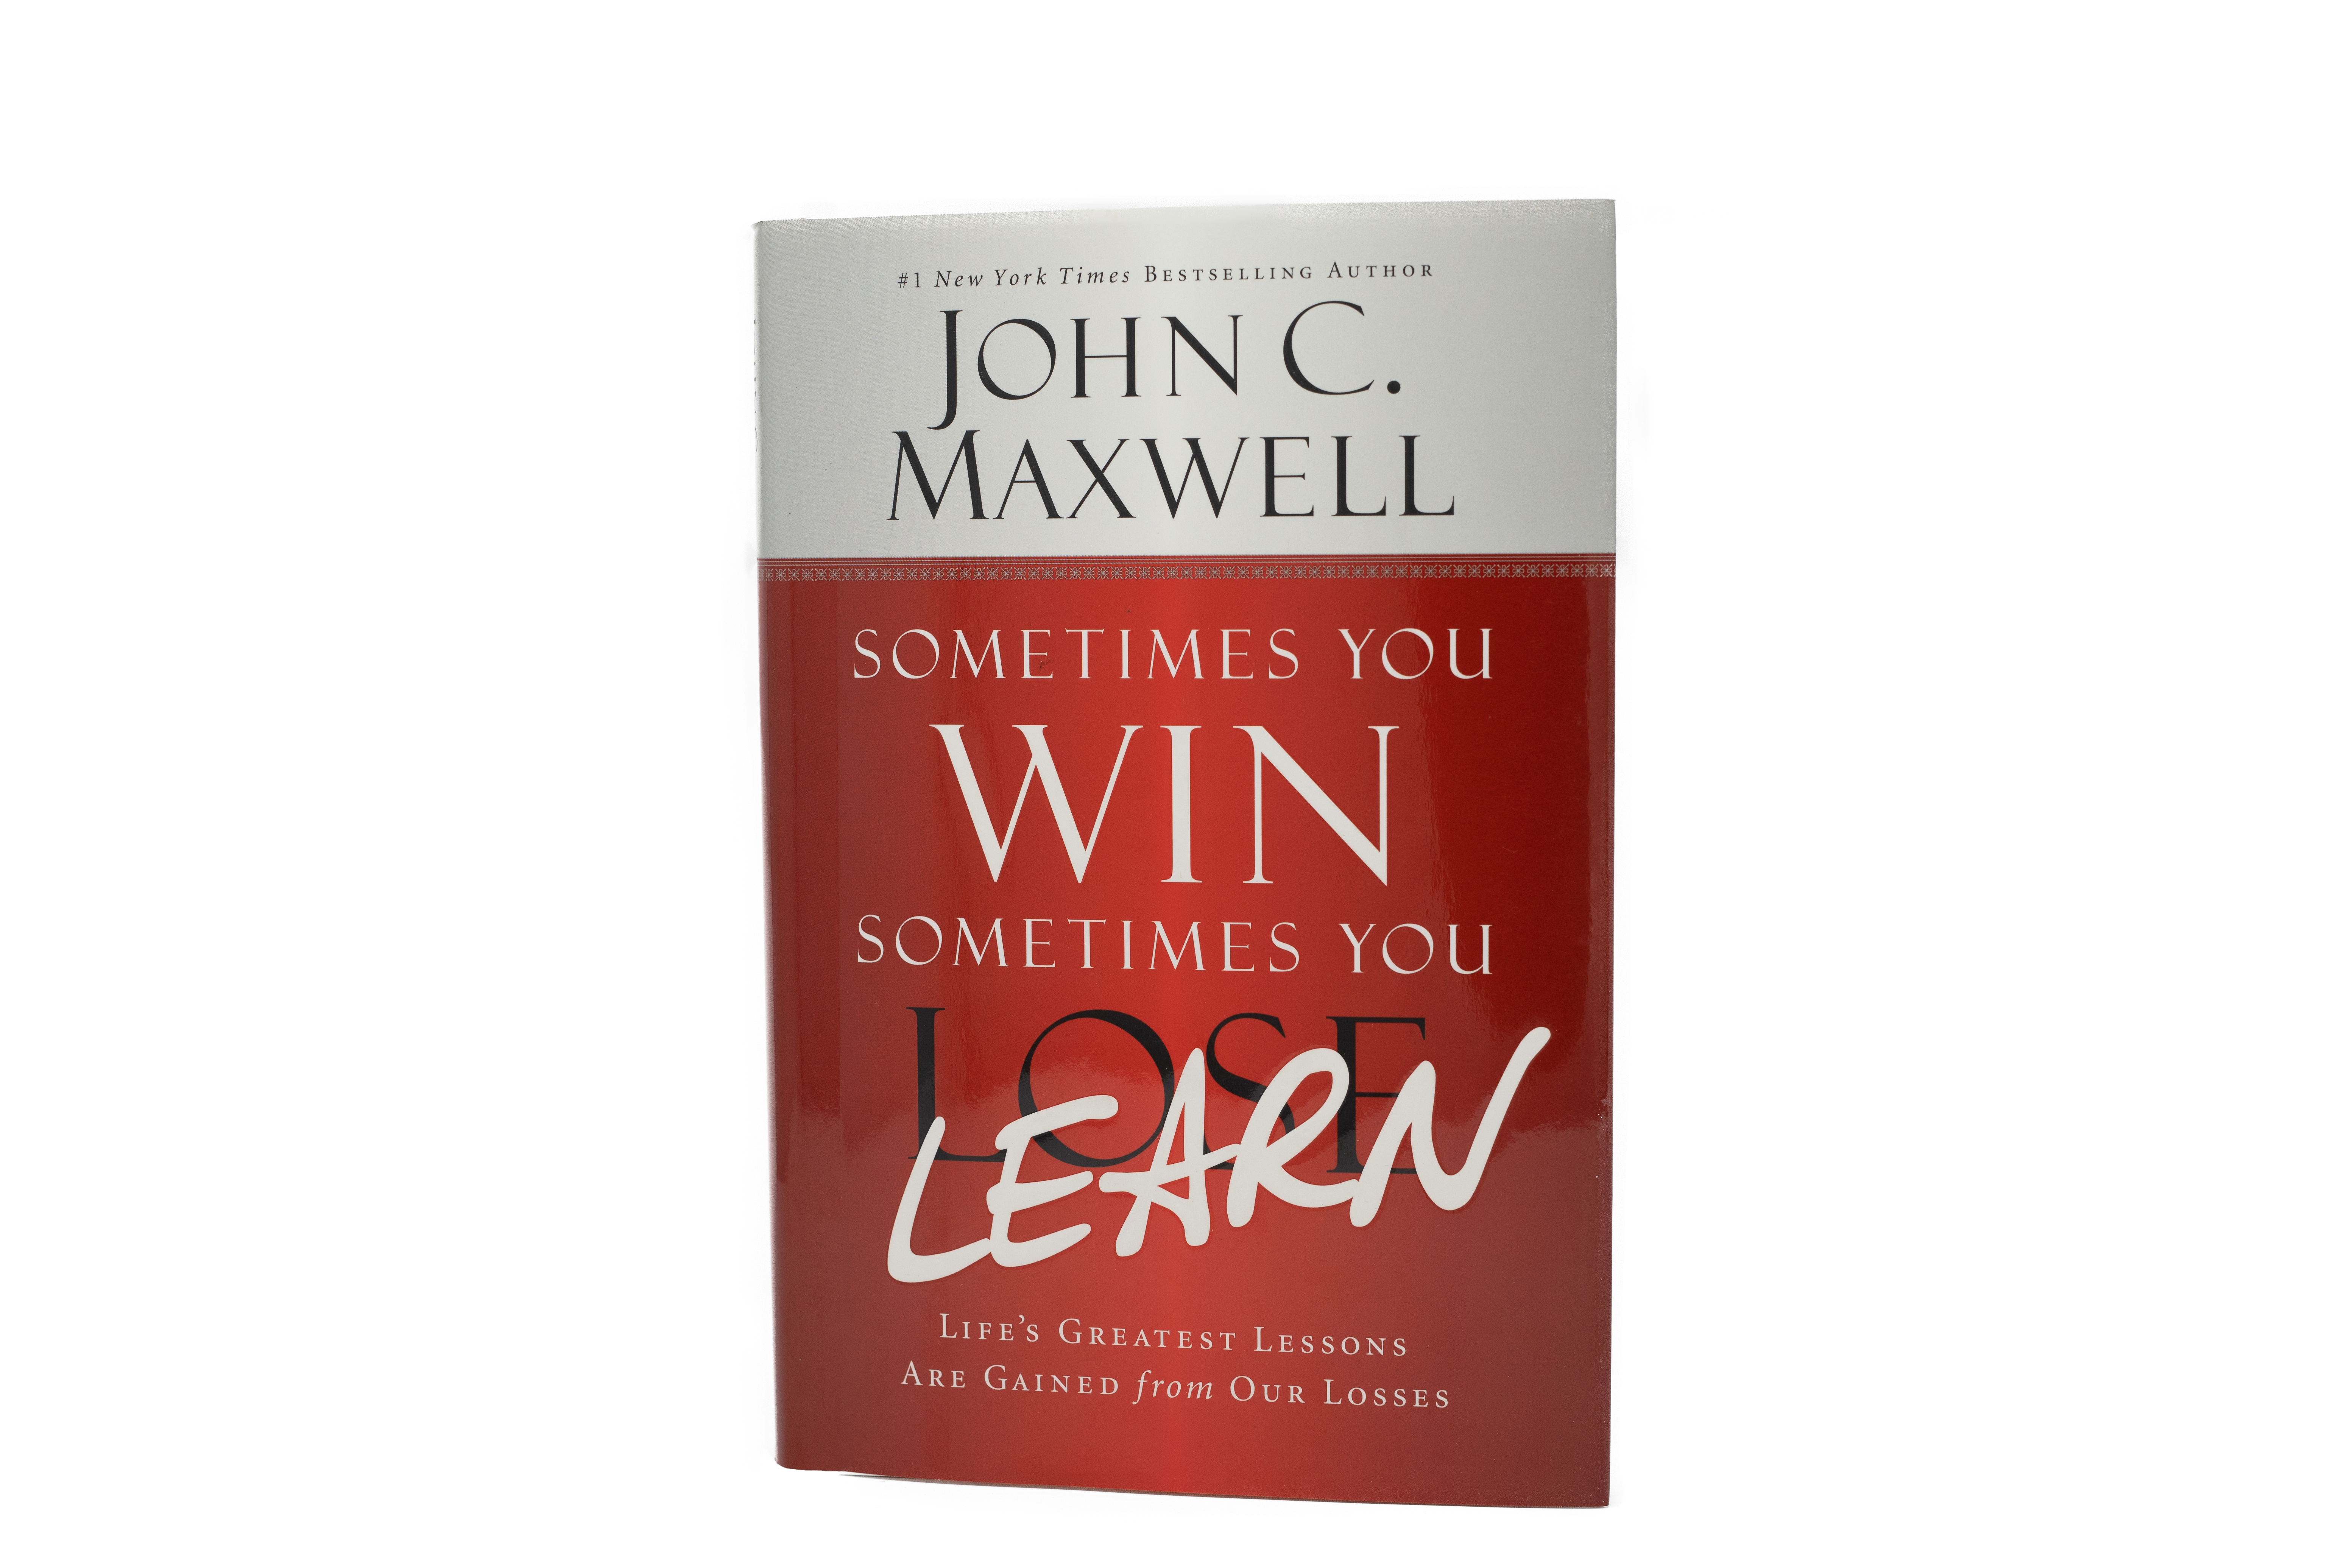 Sometimes You Win Sometimes You Learn - Life's Greatest Lessons are Learned from Our Losses [Hardcover]